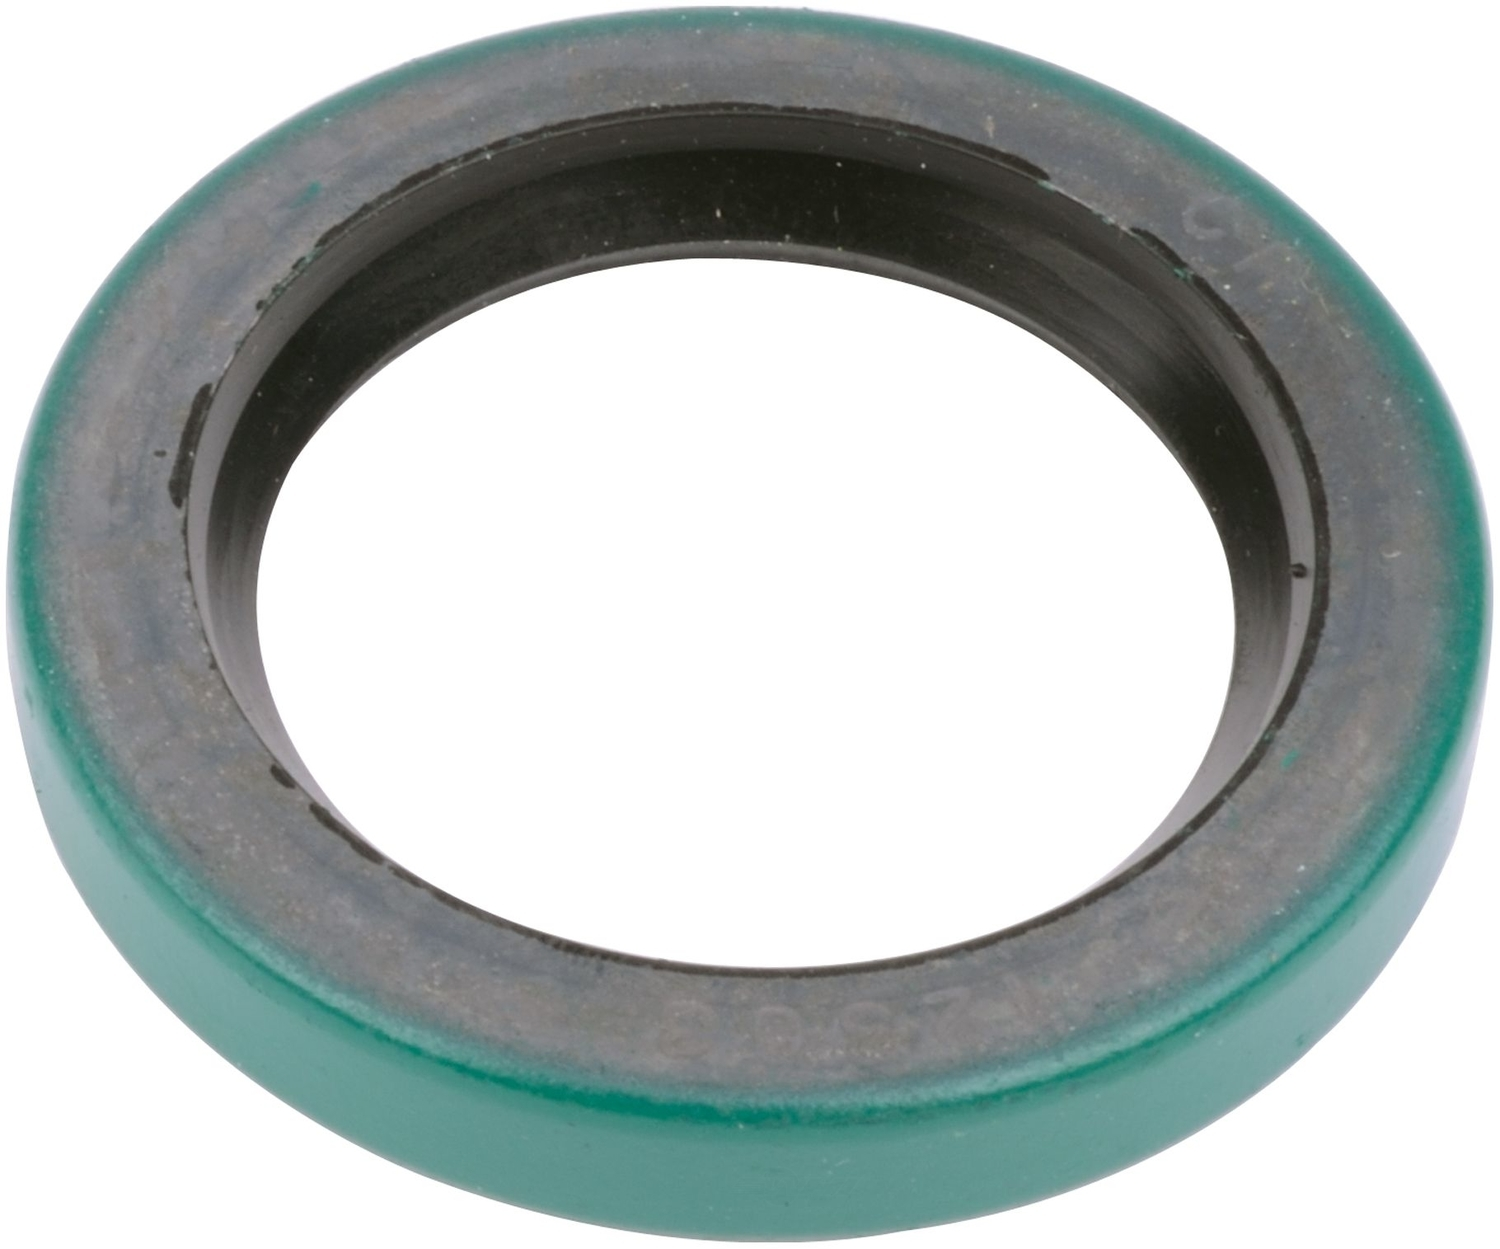 SKF (CHICAGO RAWHIDE) - Manual Trans Input Shaft Seal - SKF 12363